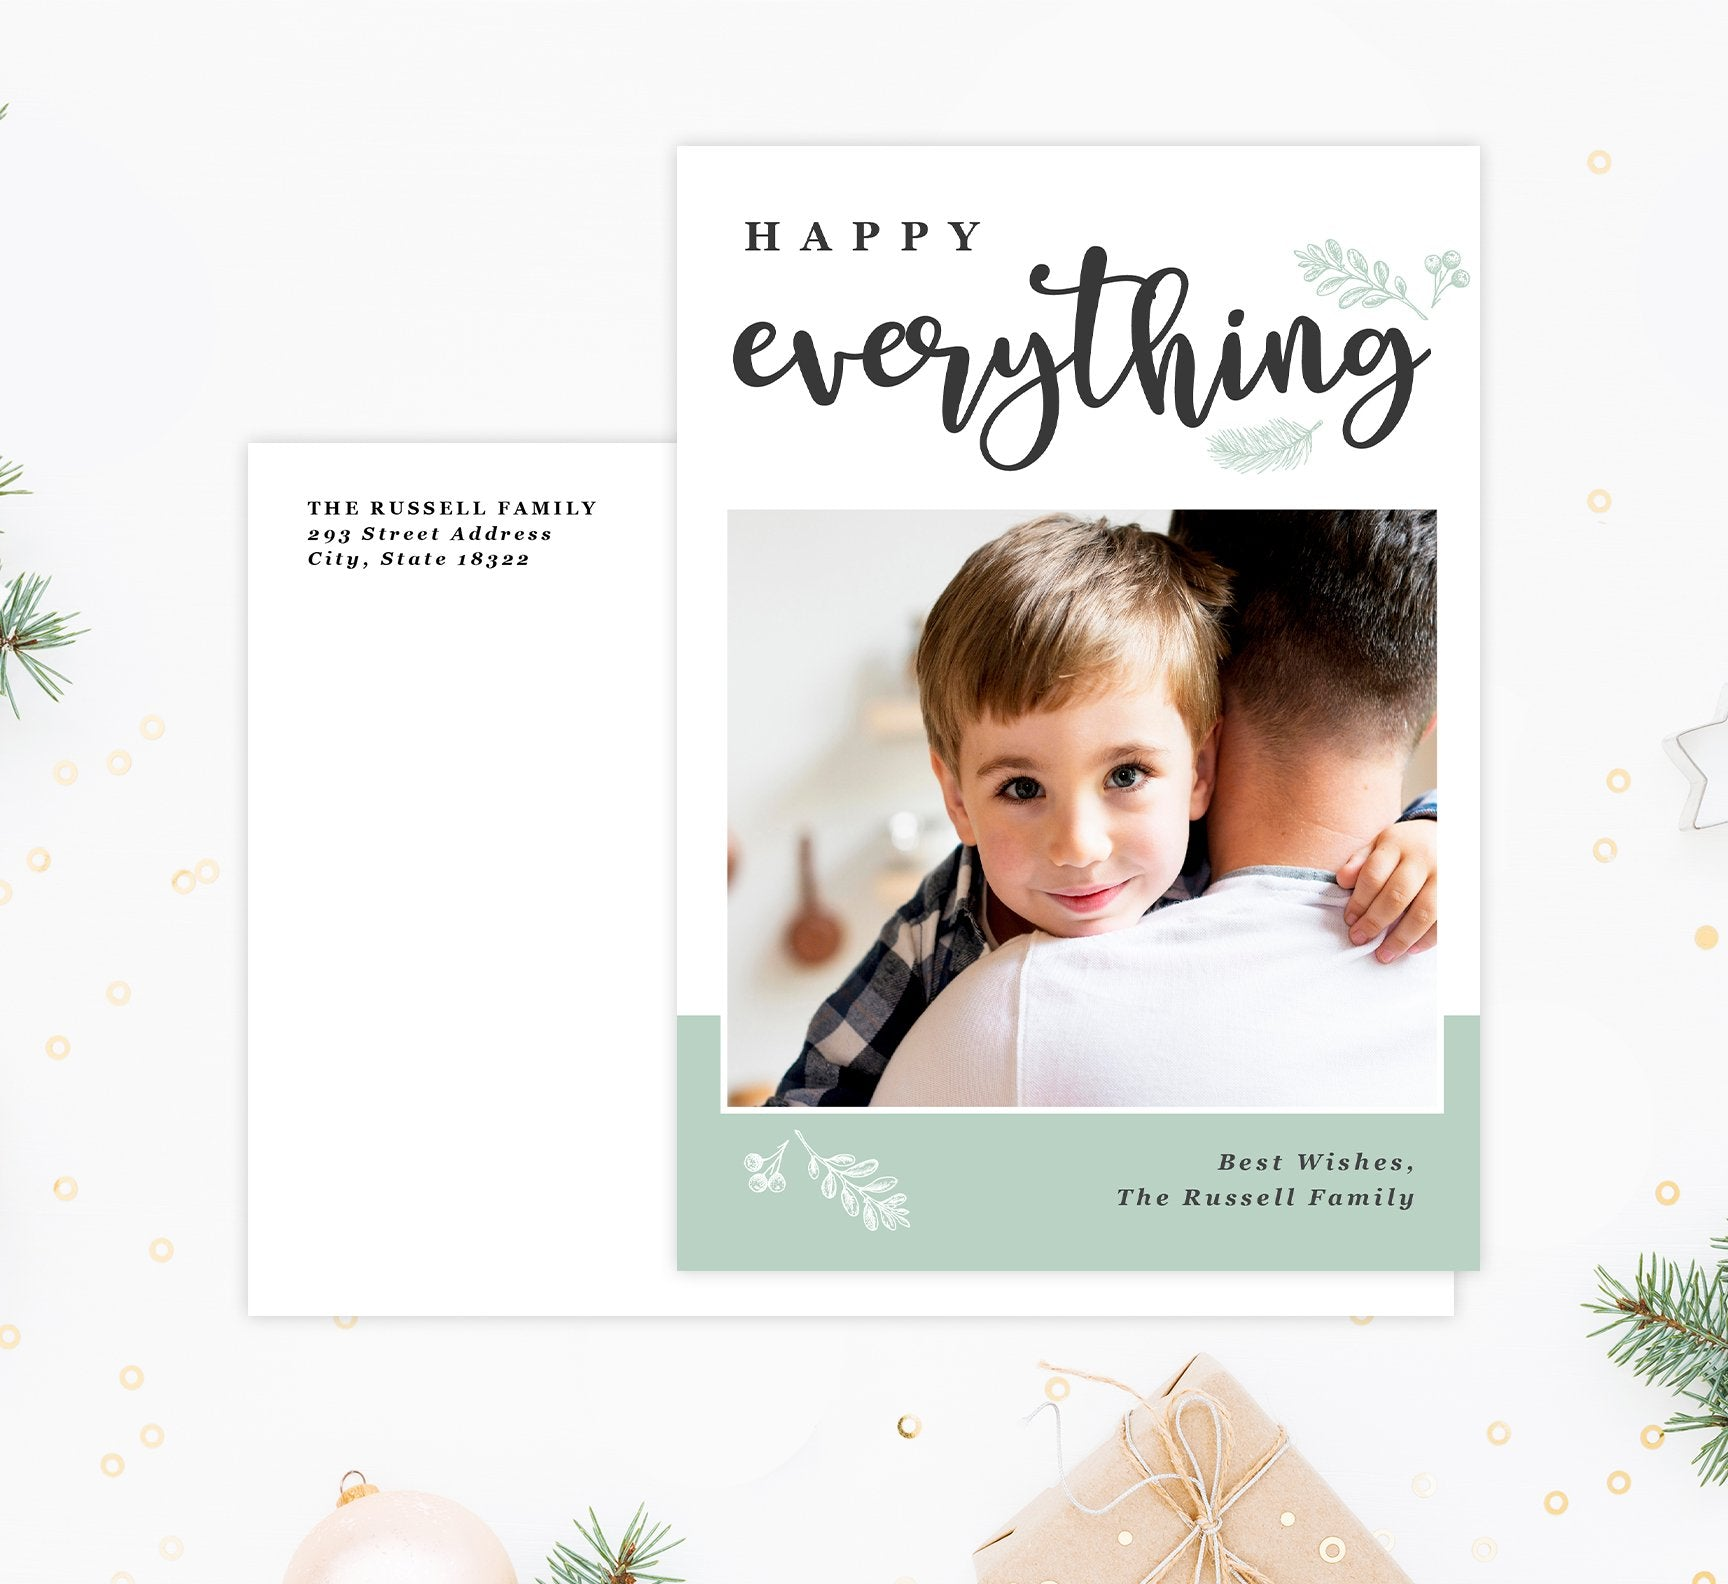 Happy Everything Holiday Card Mockup; Holiday card with envelope and return address printed on it.